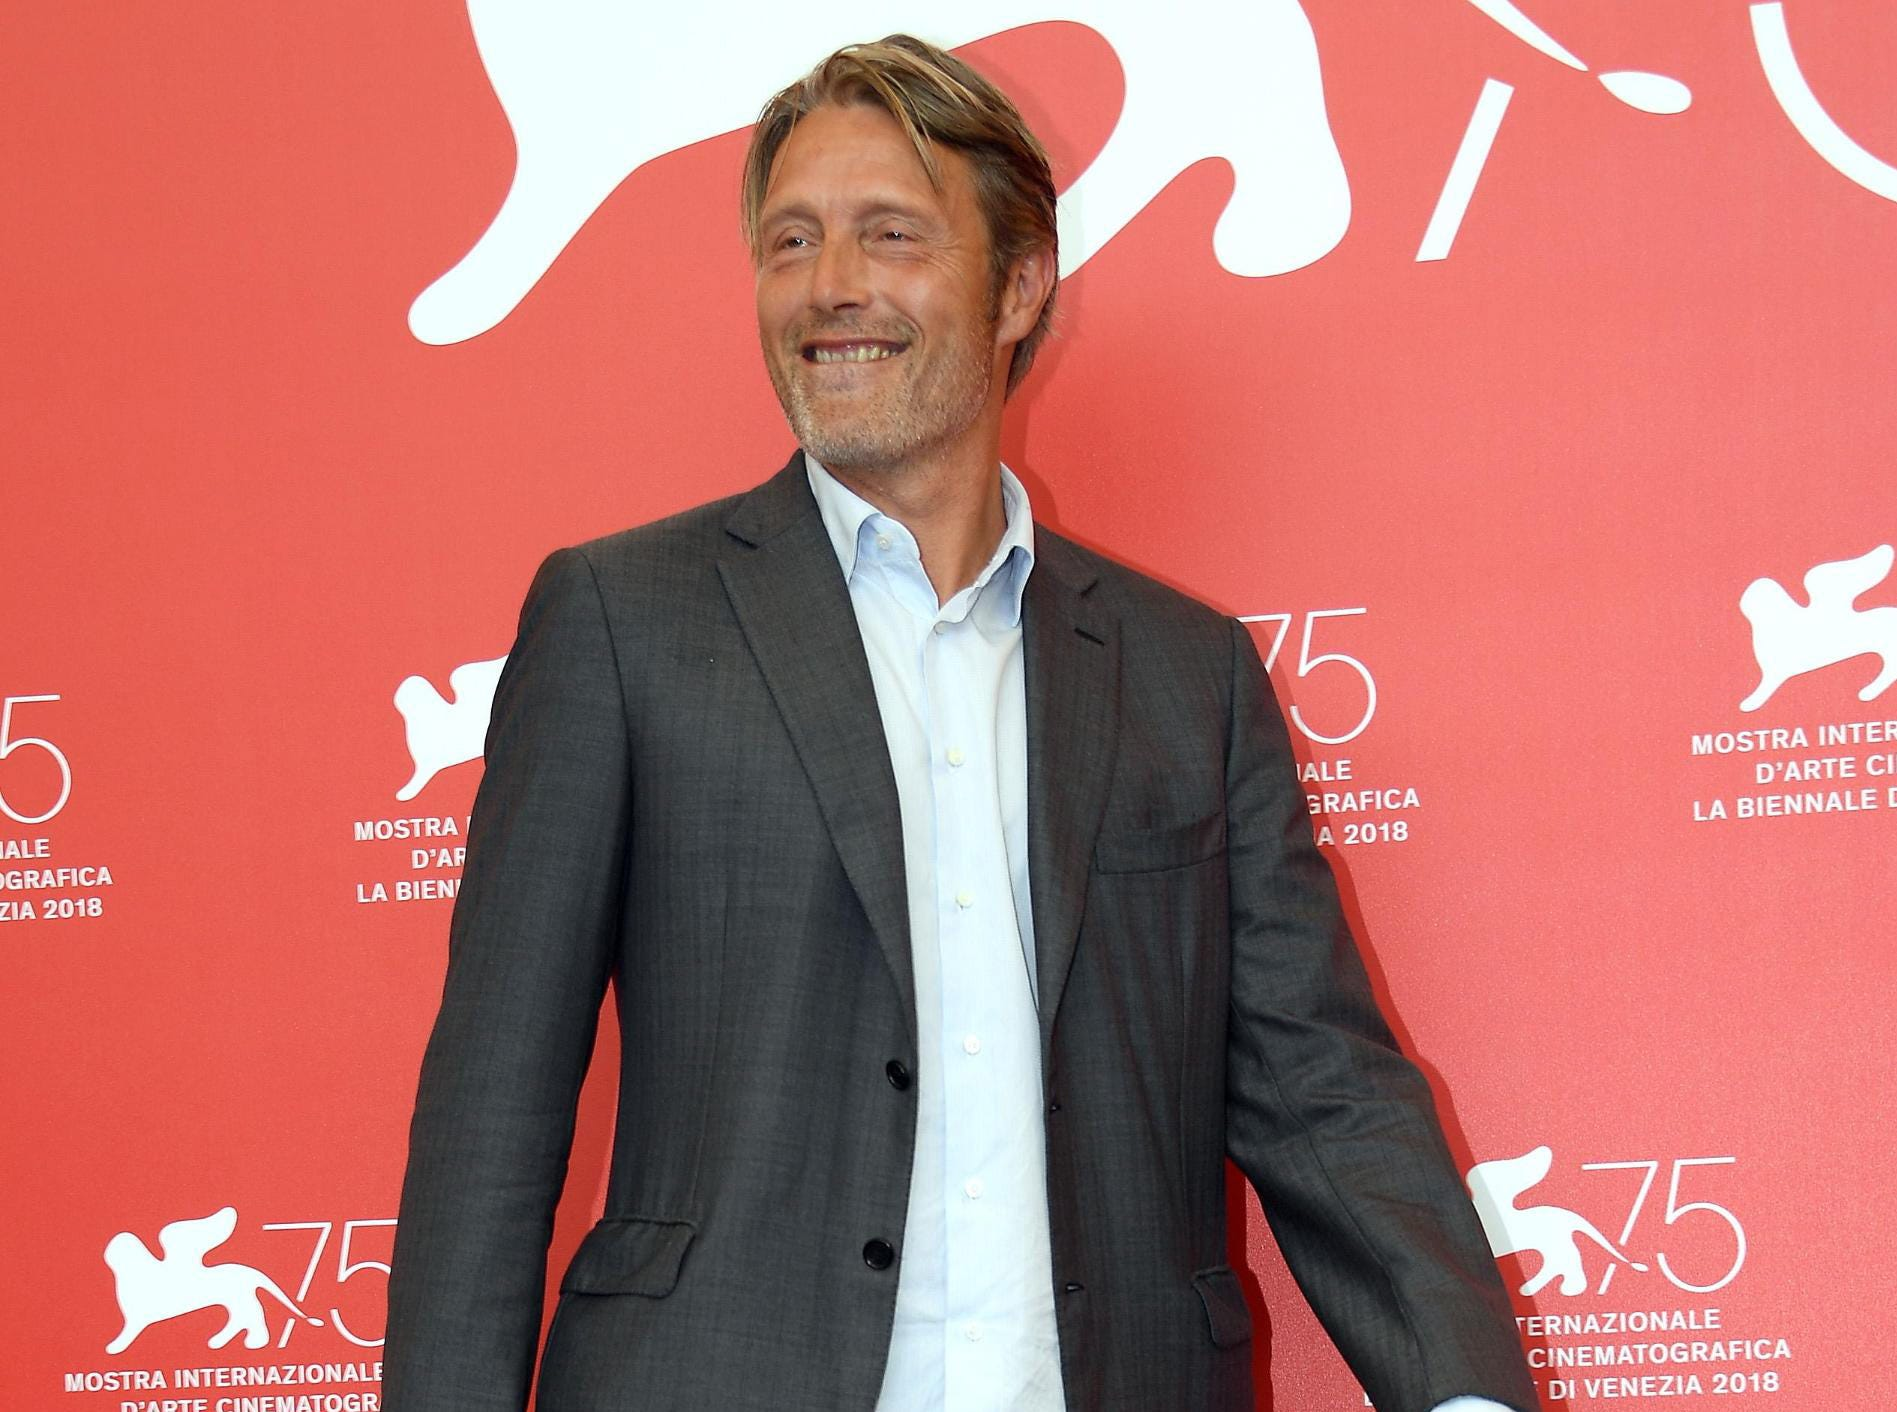 epa06994594 Danish actor Mads Mikkelsen poses during a photocall for 'At Eternitys Gate' at the 75th annual Venice International Film Festival, in Venice, Italy, 03 September 2018. The movie is presented in official competition Venezia 75 at the festival running from 29 August to 08 September 2018.  EPA-EFE/CLAUDIO ONORATI ORG XMIT: VFF100